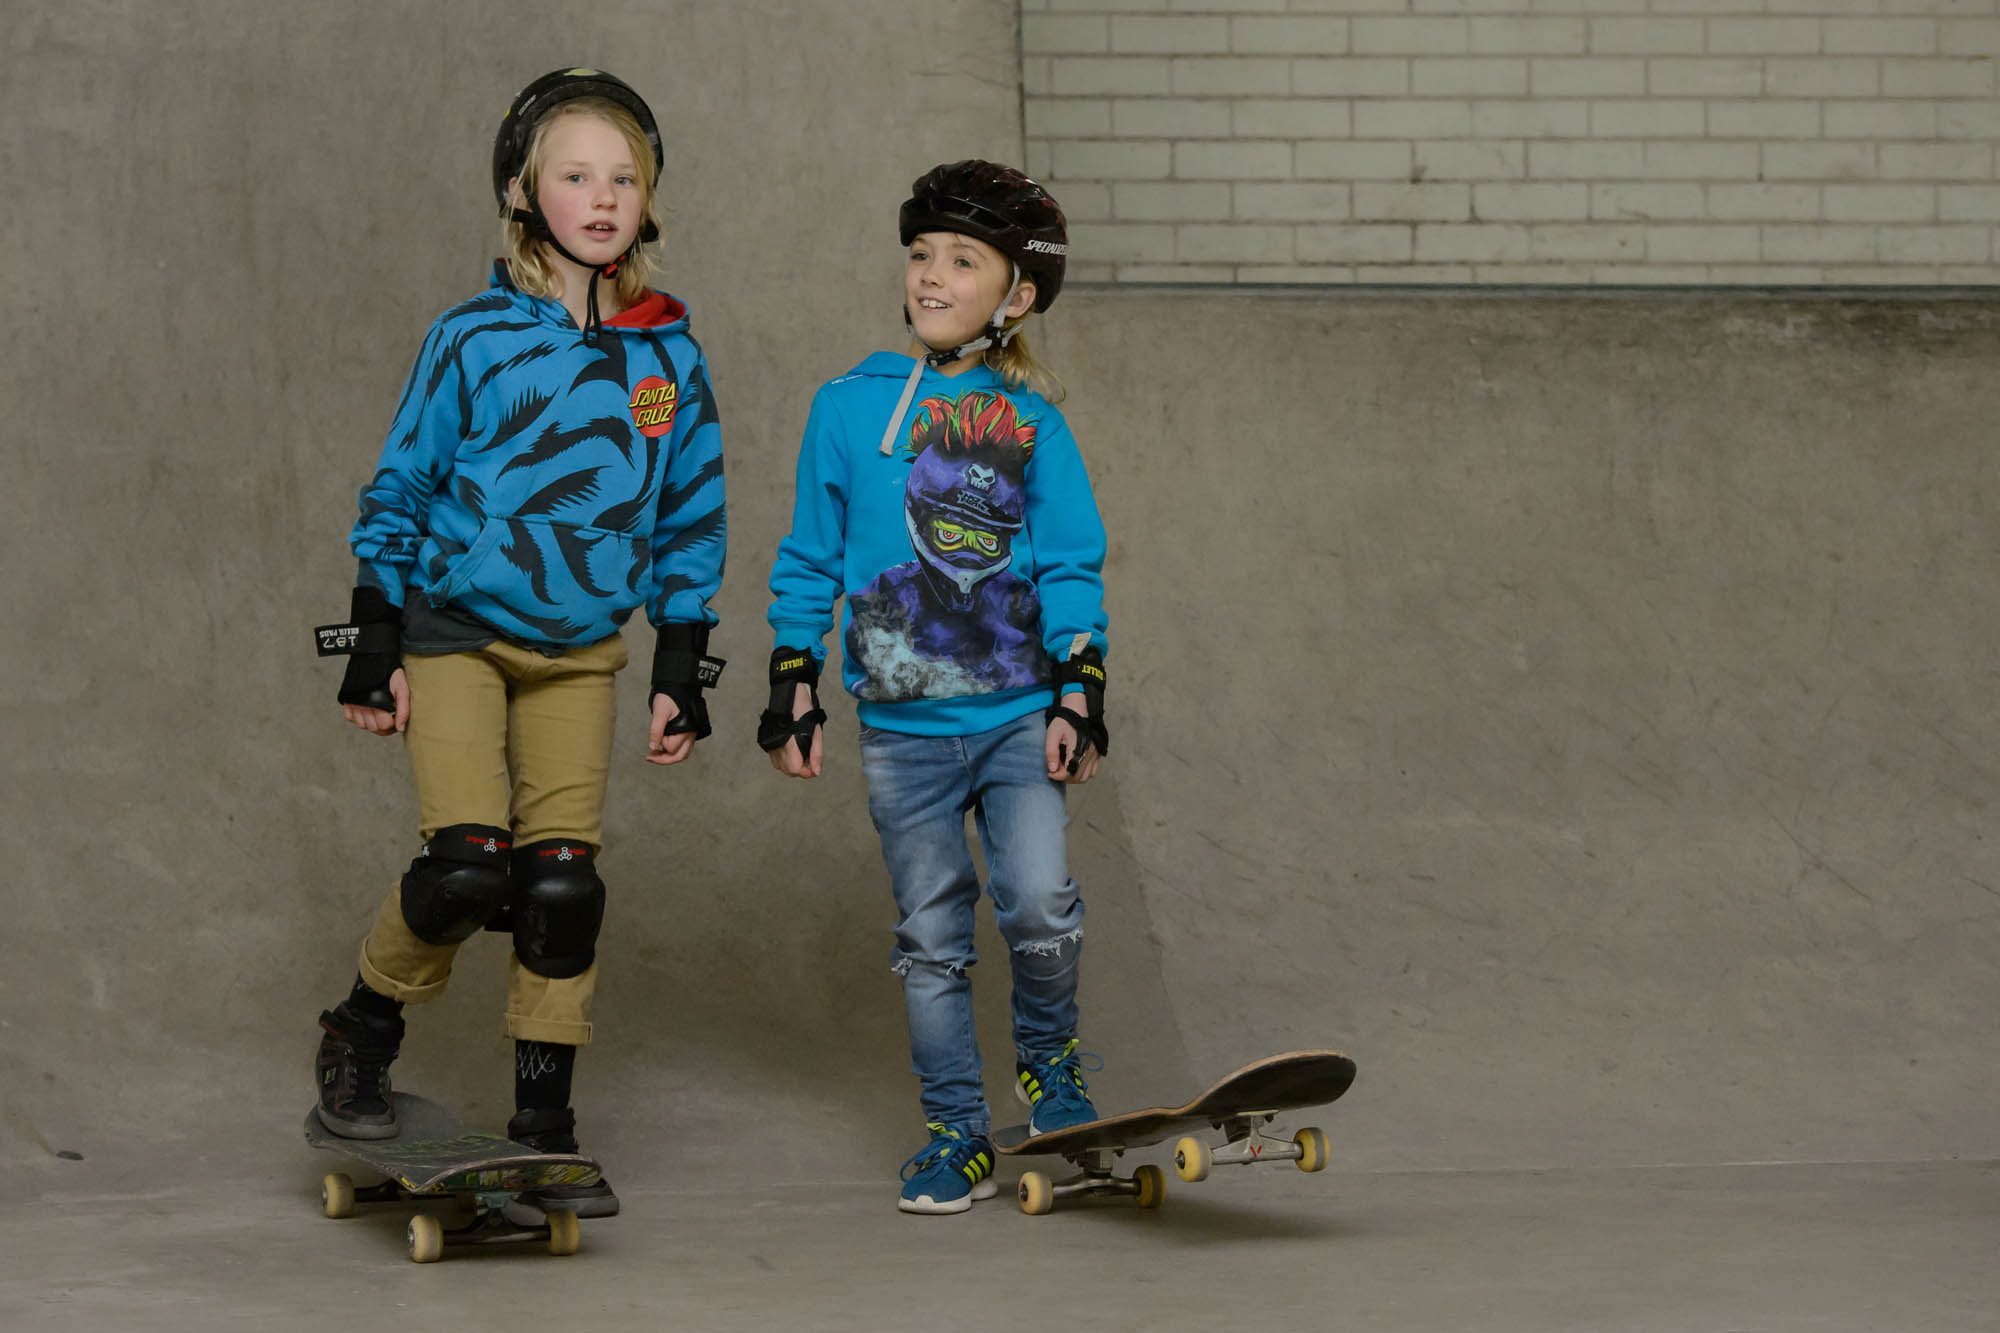 Two young girls on skateboards